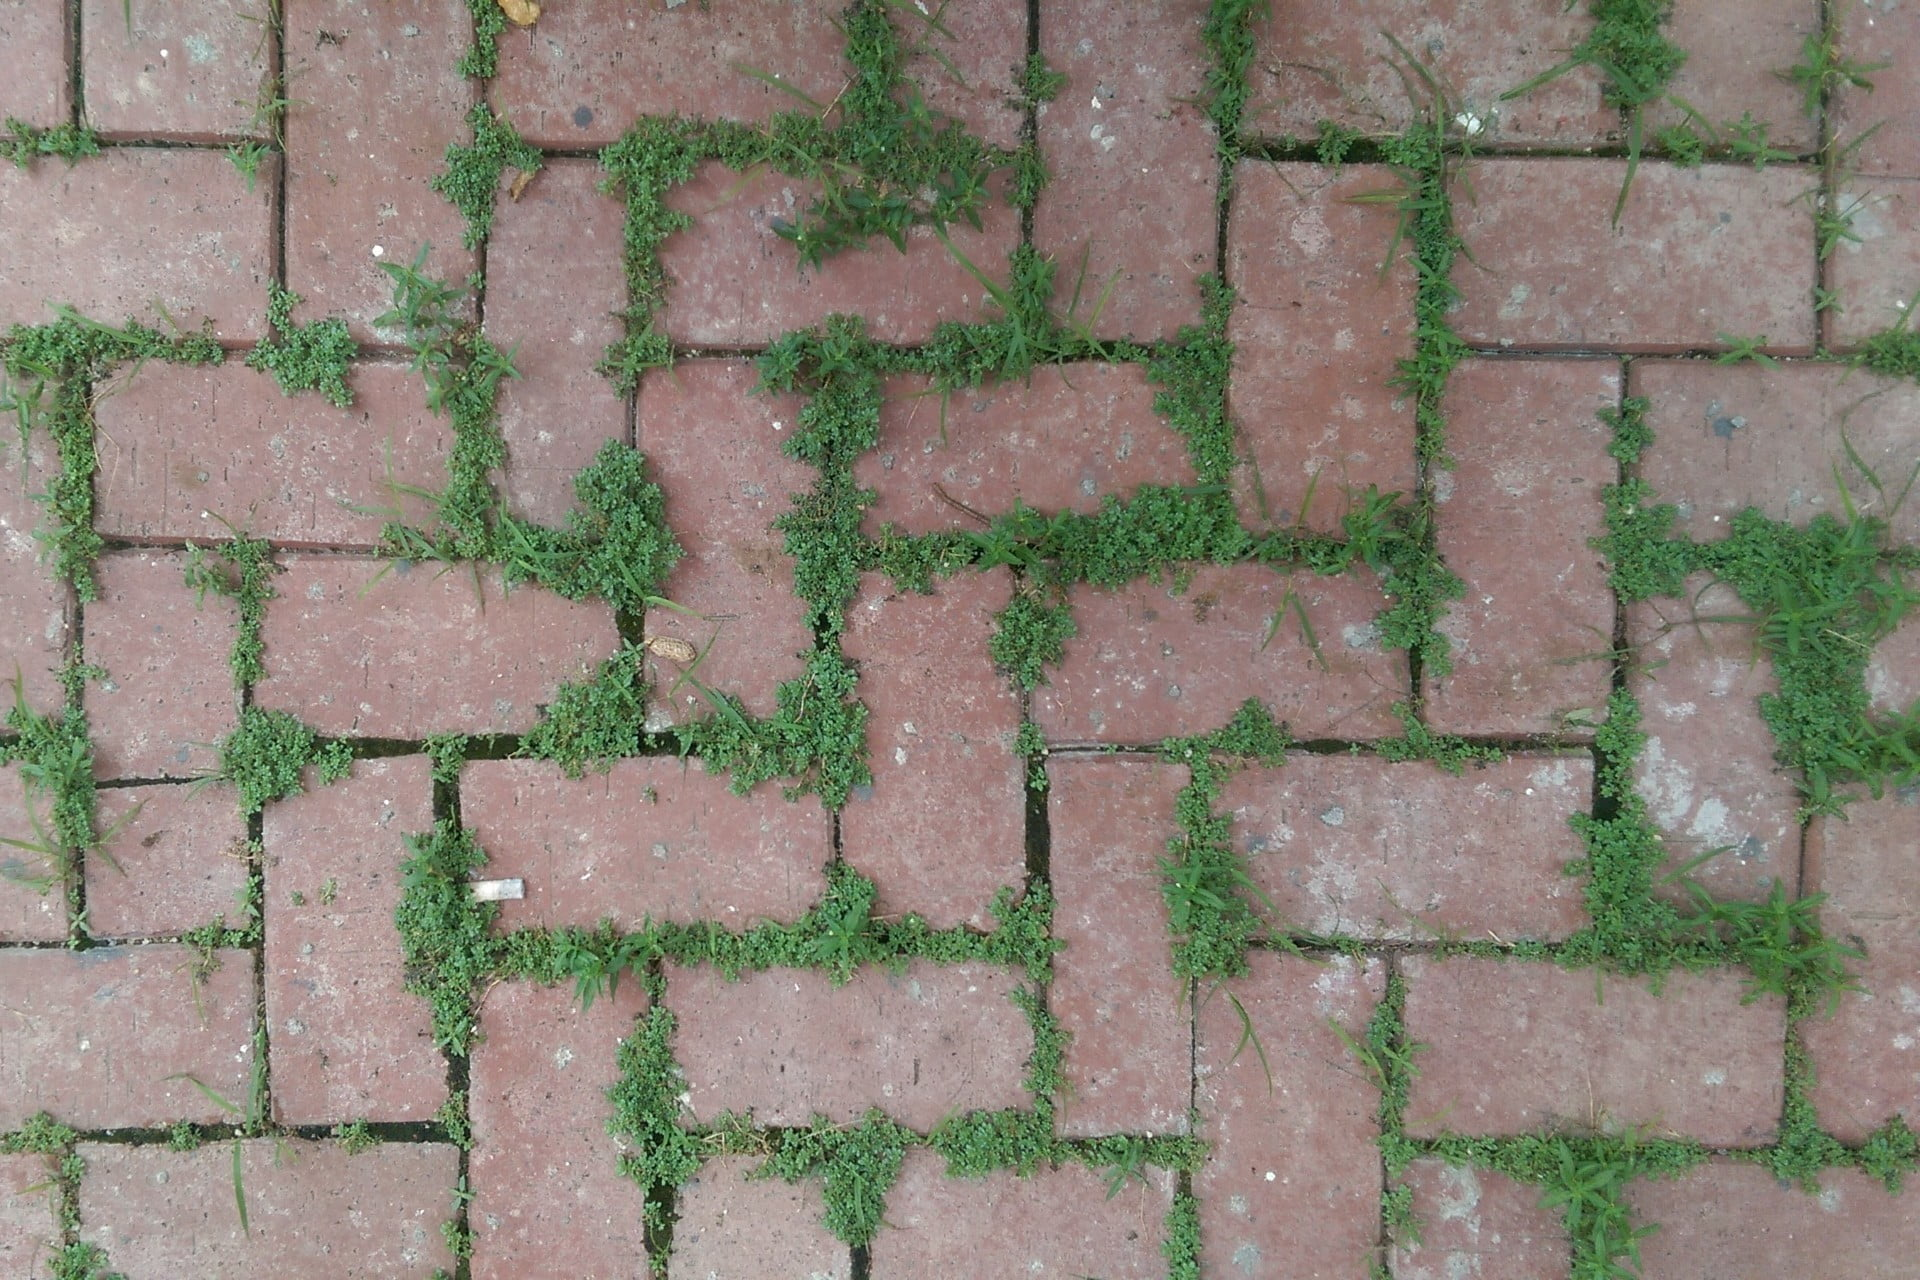 How To Kill Pesky Weeds From Between Your Patio Pavers | 21Oak